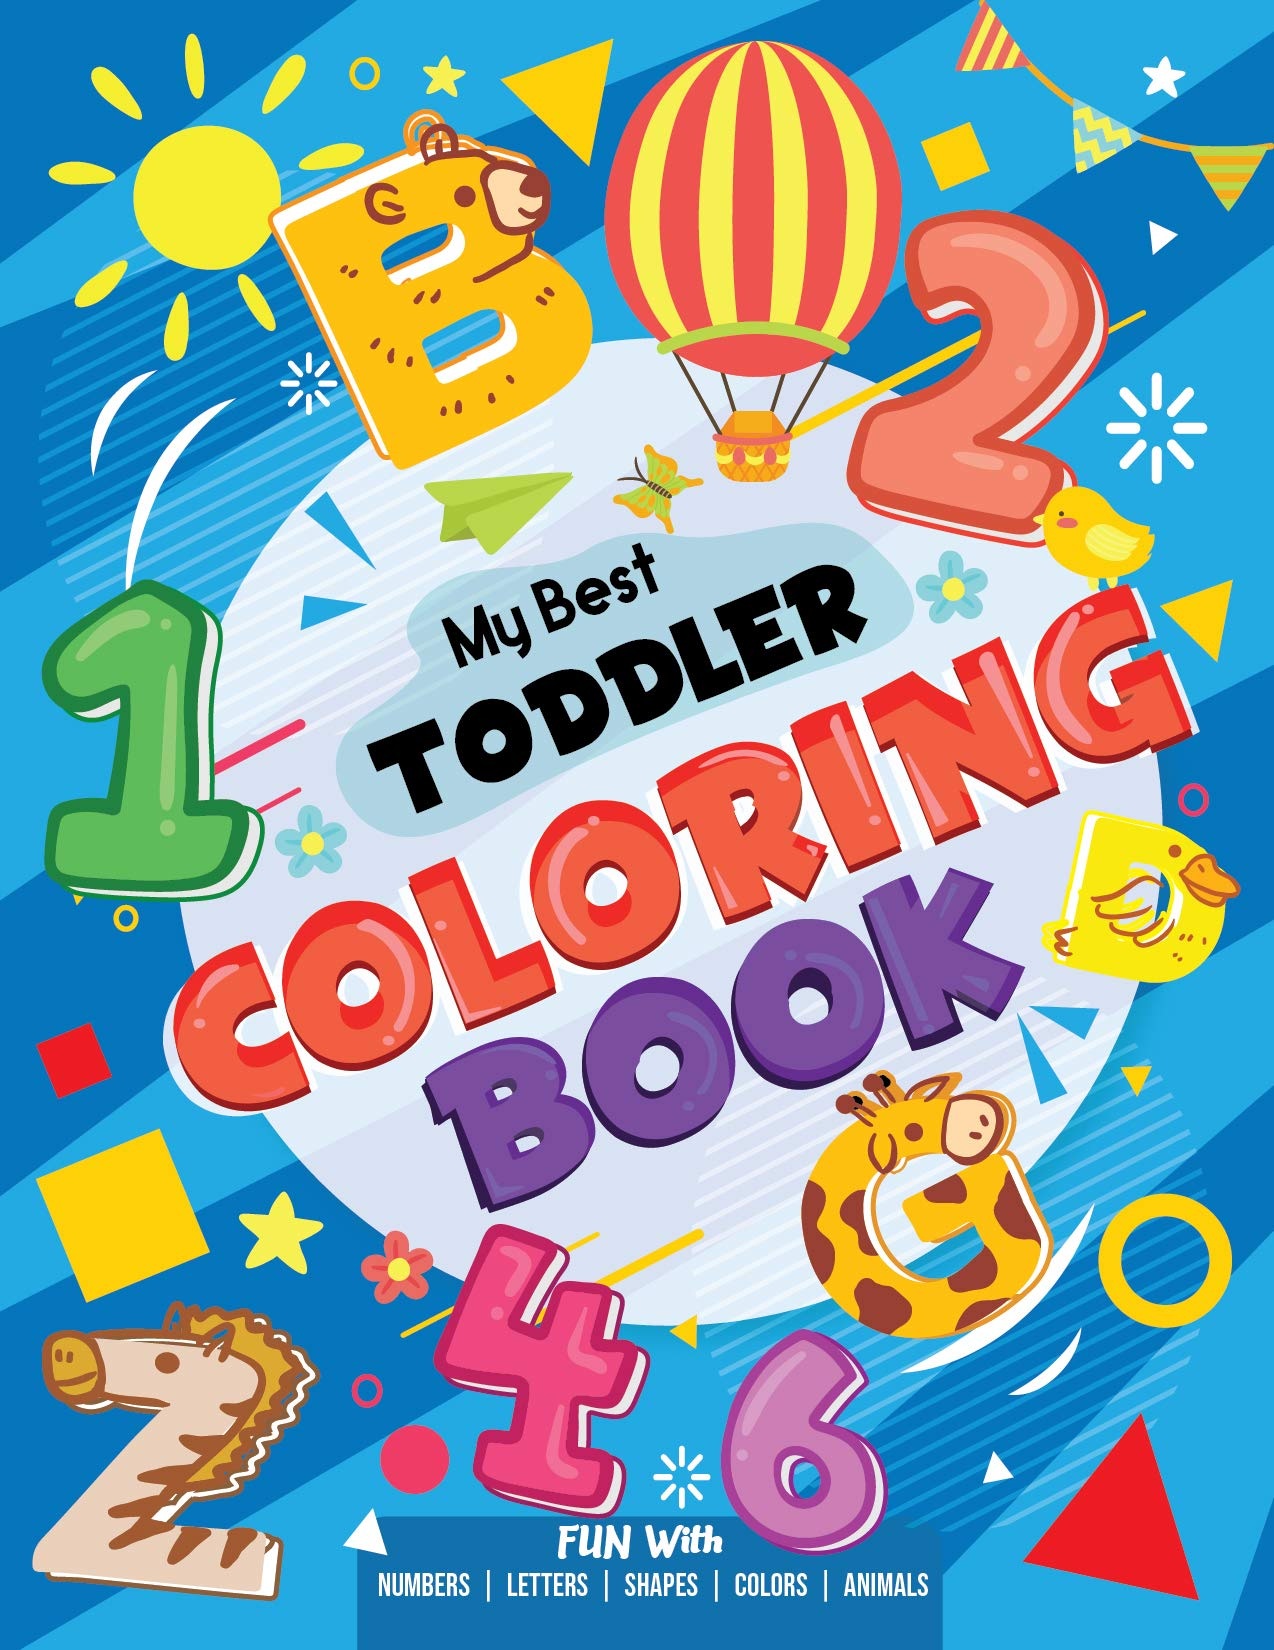 My Best Toddler Coloring Book Fun With Numbers Letters Shapes Colors Animals Big Activity Workbook For Toddlers Kids Toddlerz Happy 9781075307942 Amazon Com Books